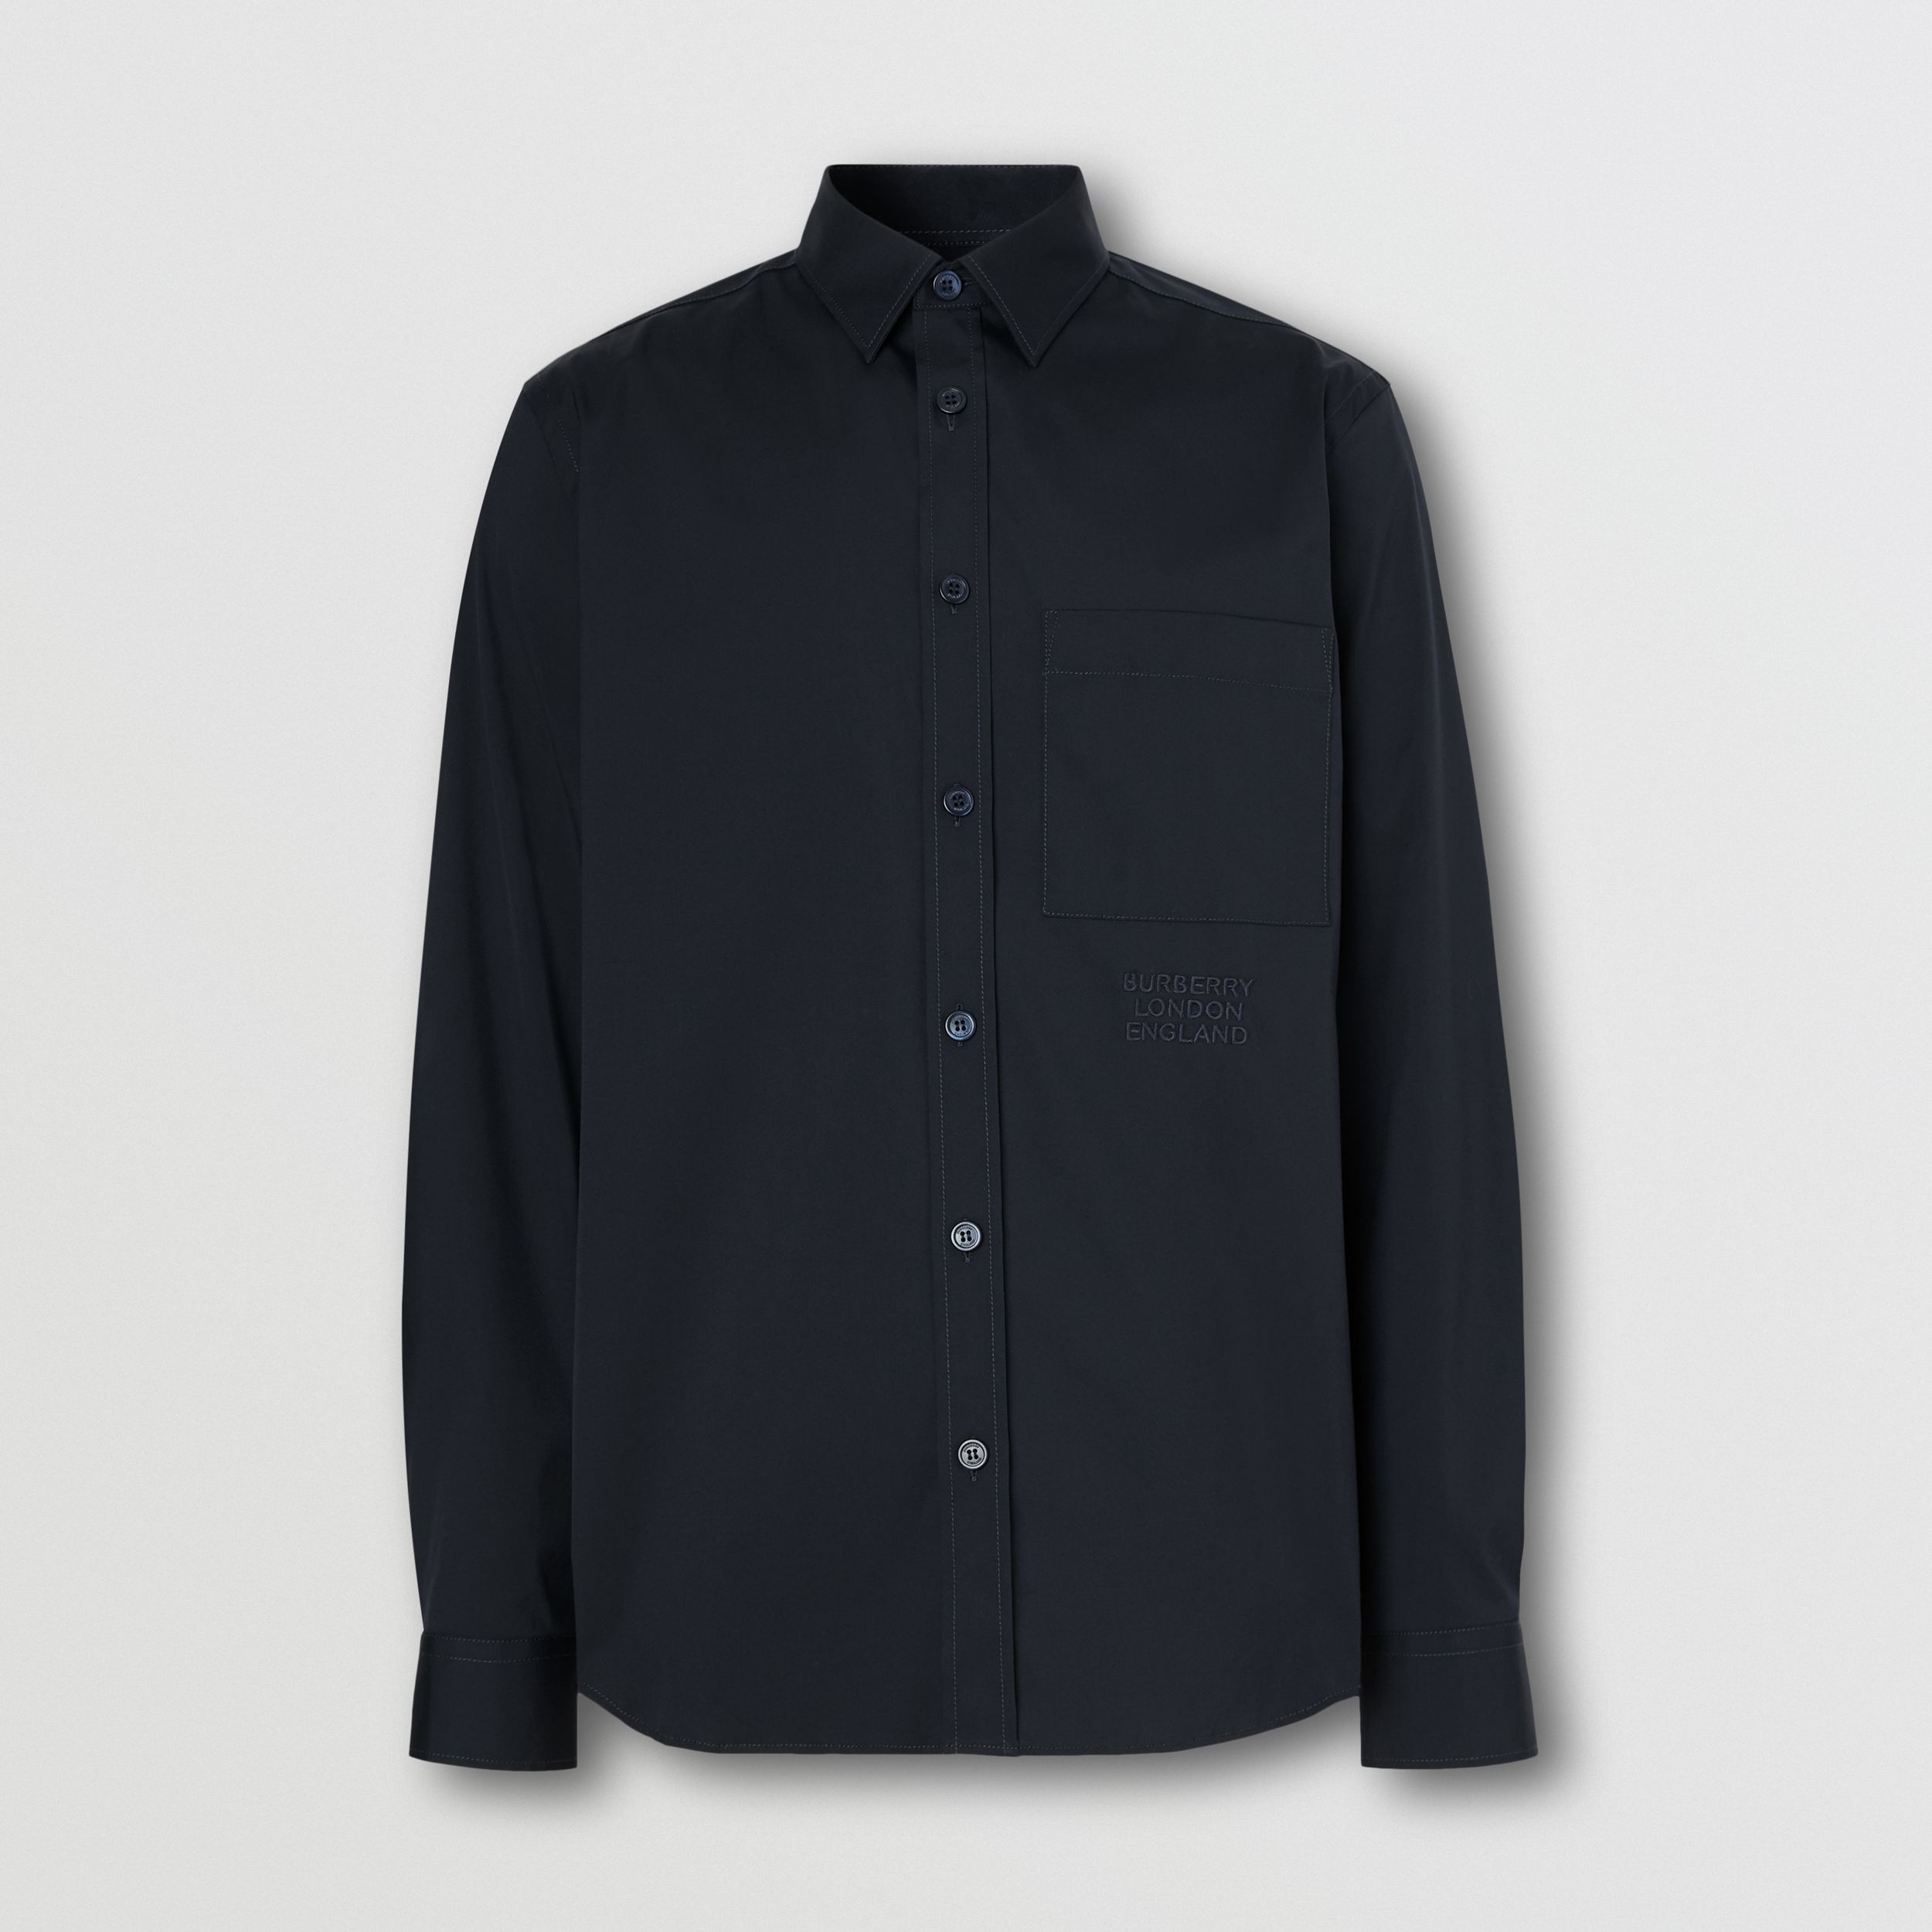 Embroidered Logo Cotton Blend Shirt in Navy - Men | Burberry Hong Kong S.A.R. - 4